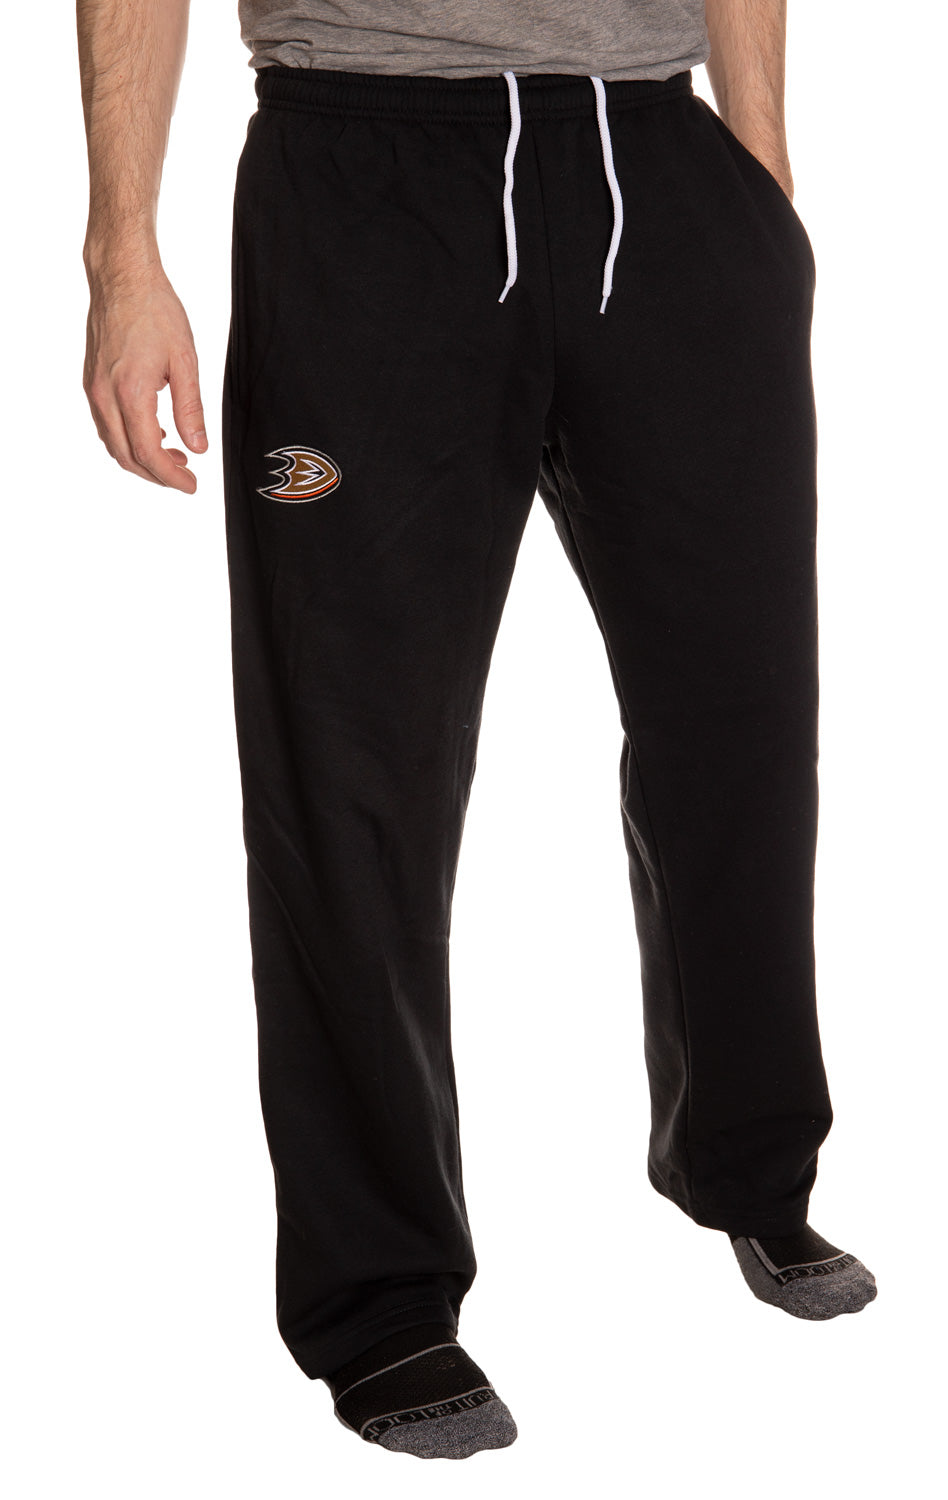 Anaheim Ducks Embroidered Logo Sweatpants for Men Hands in Pocket, Front View.